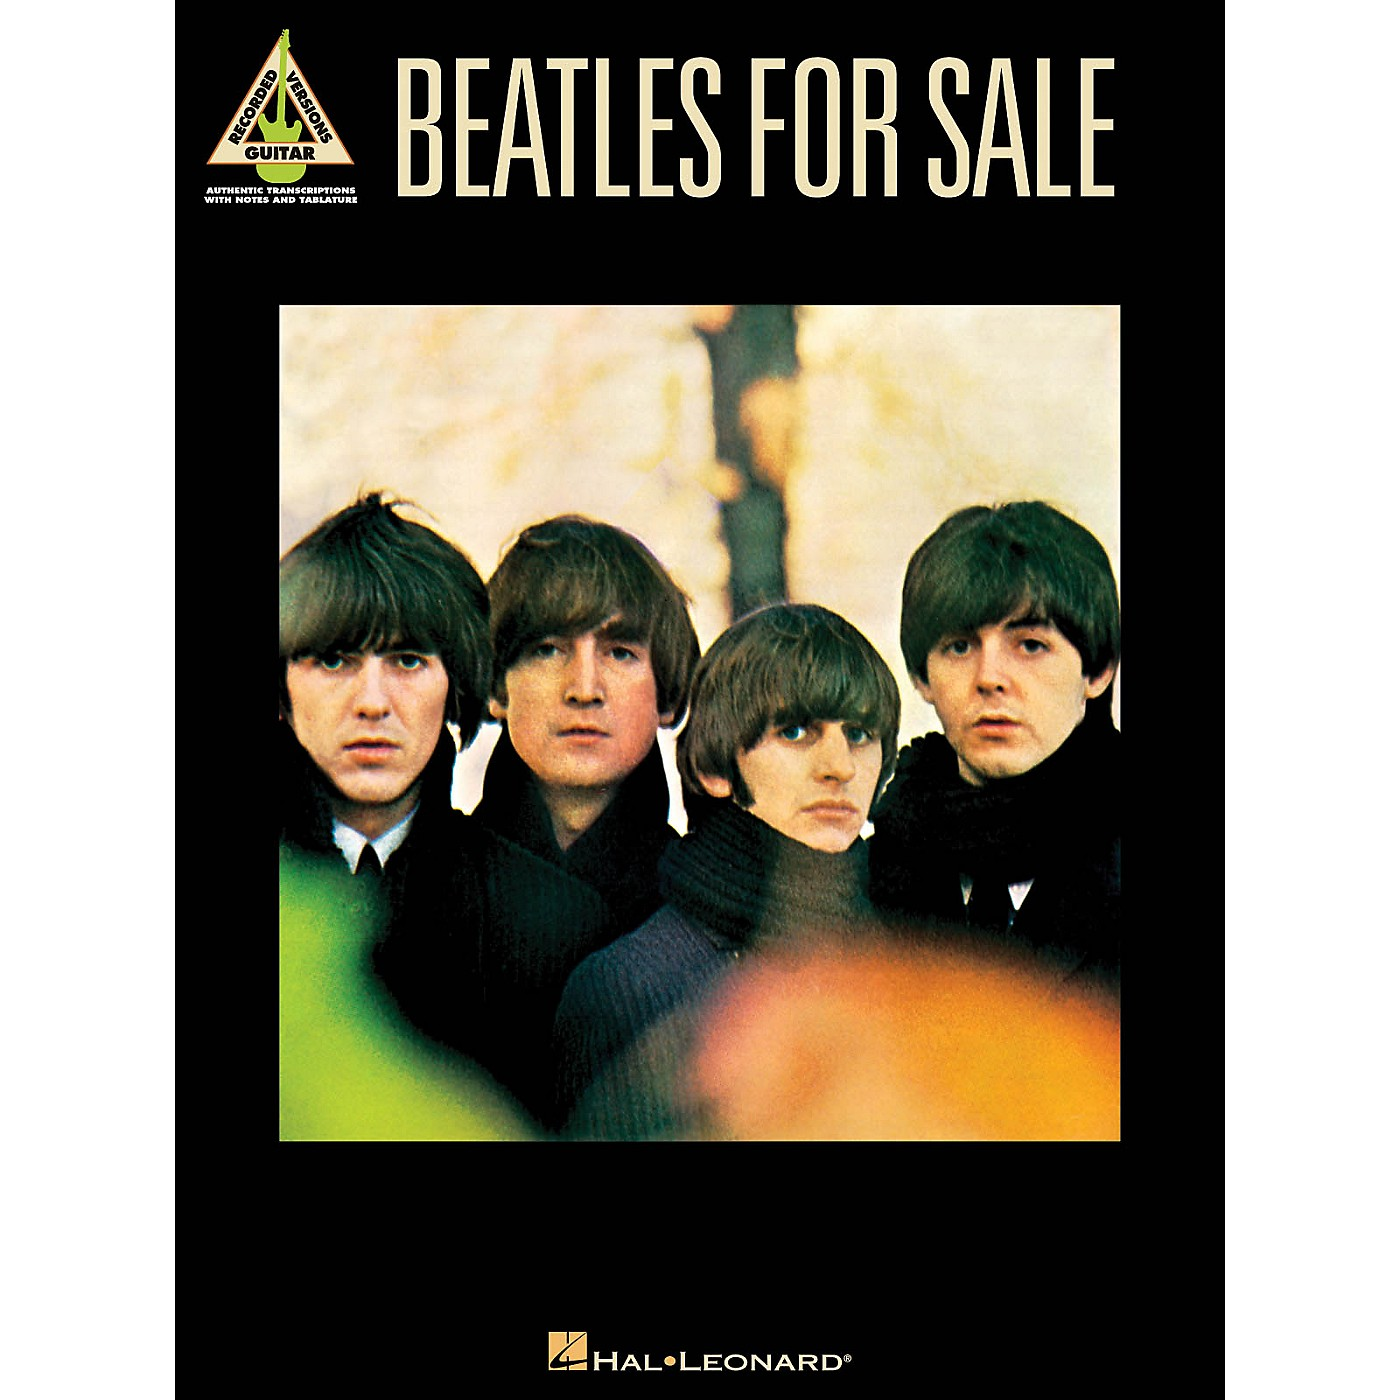 Hal Leonard The Beatles - Beatles for Sale Guitar Recorded Version Series Softcover Performed by The Beatles thumbnail